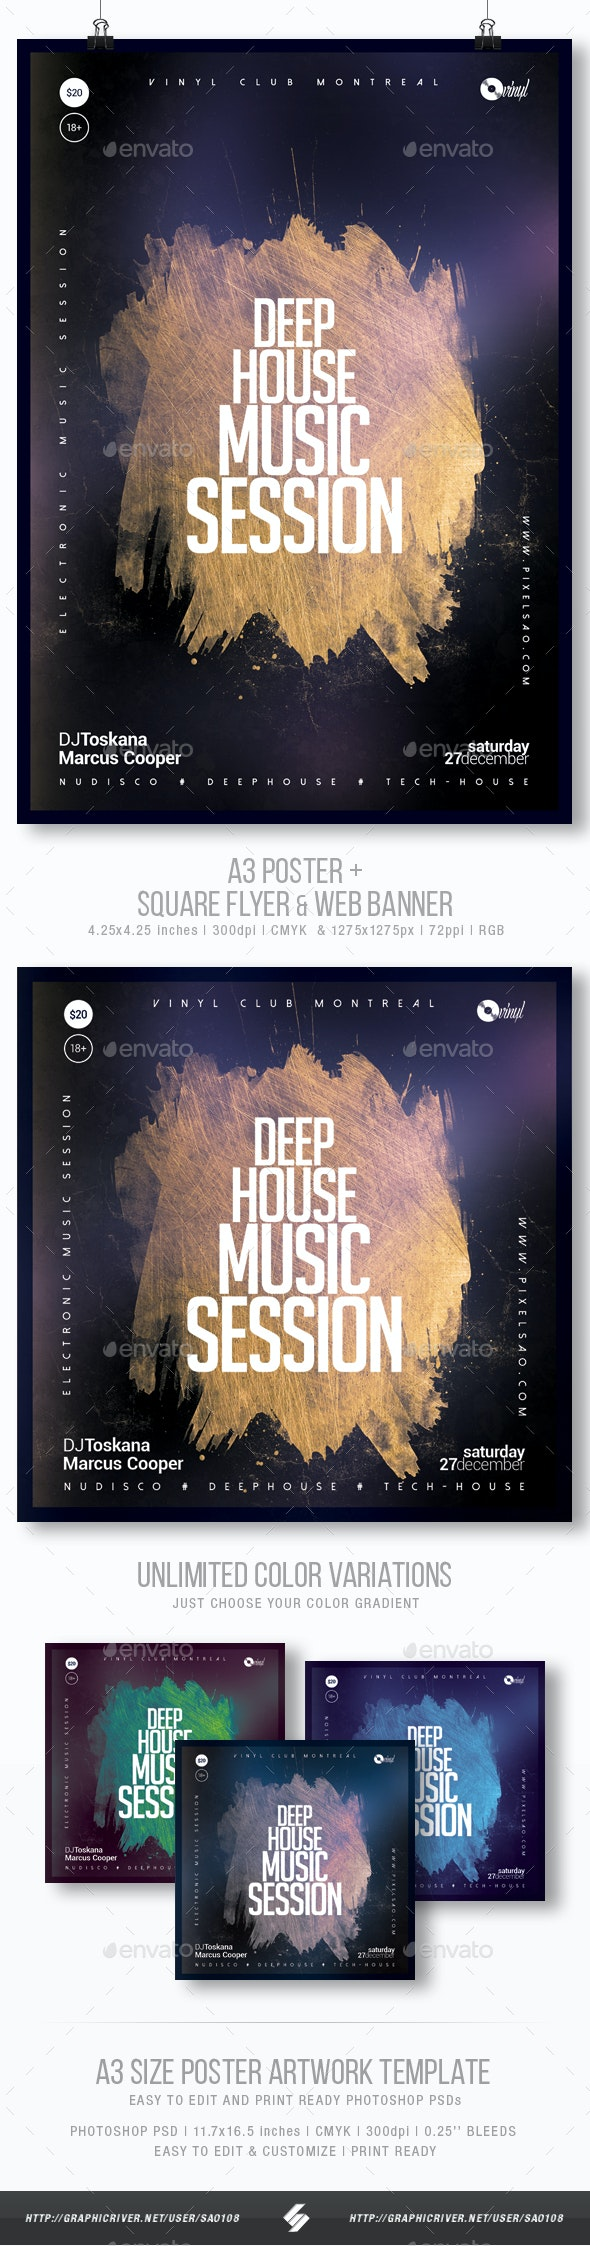 Deep House Session 4 - Party Flyer / Poster Template A3 - Clubs & Parties Events